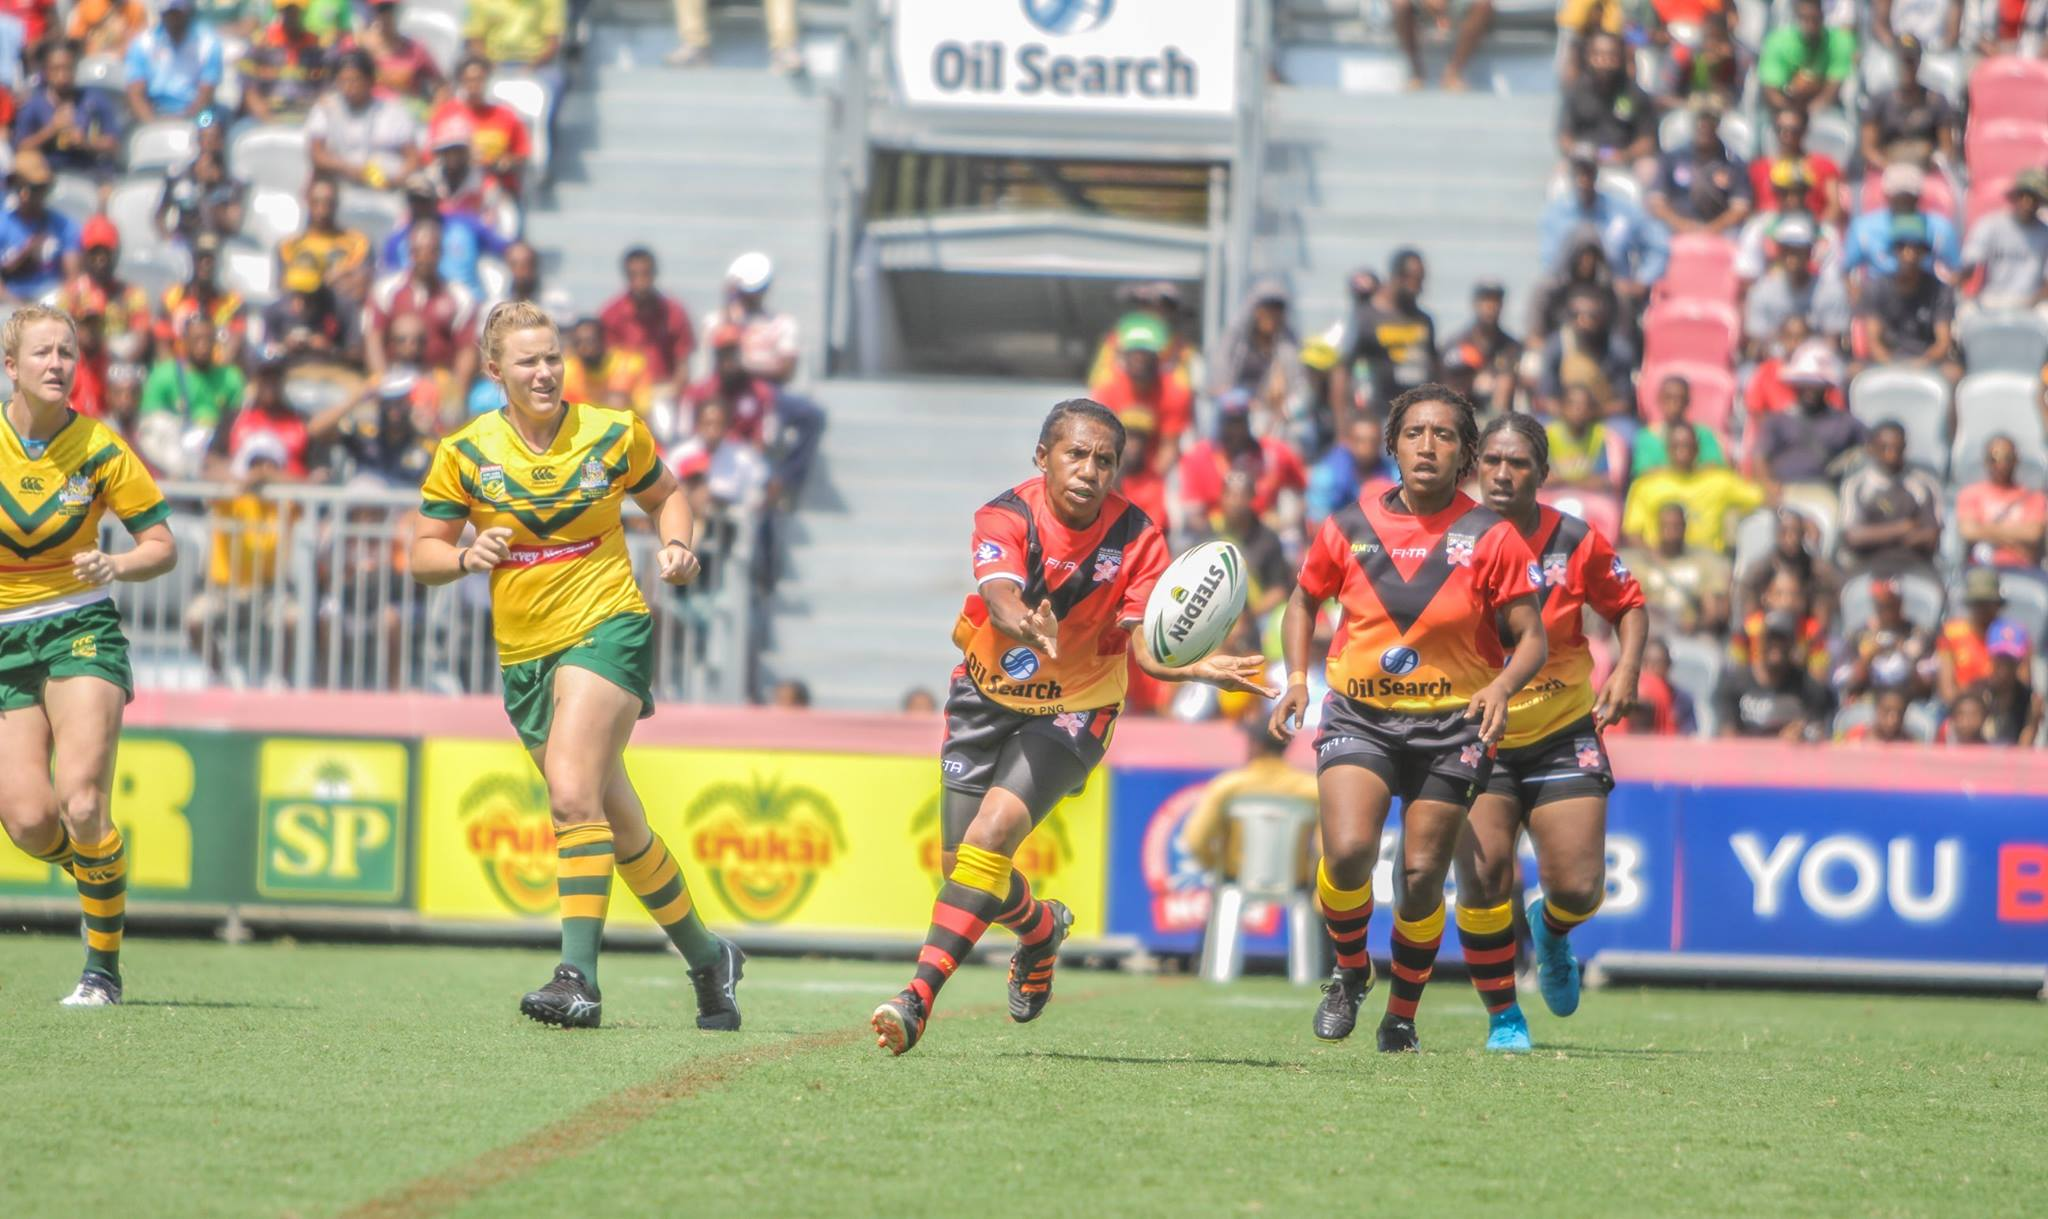 Innisfail to host World Cup warm-up matches